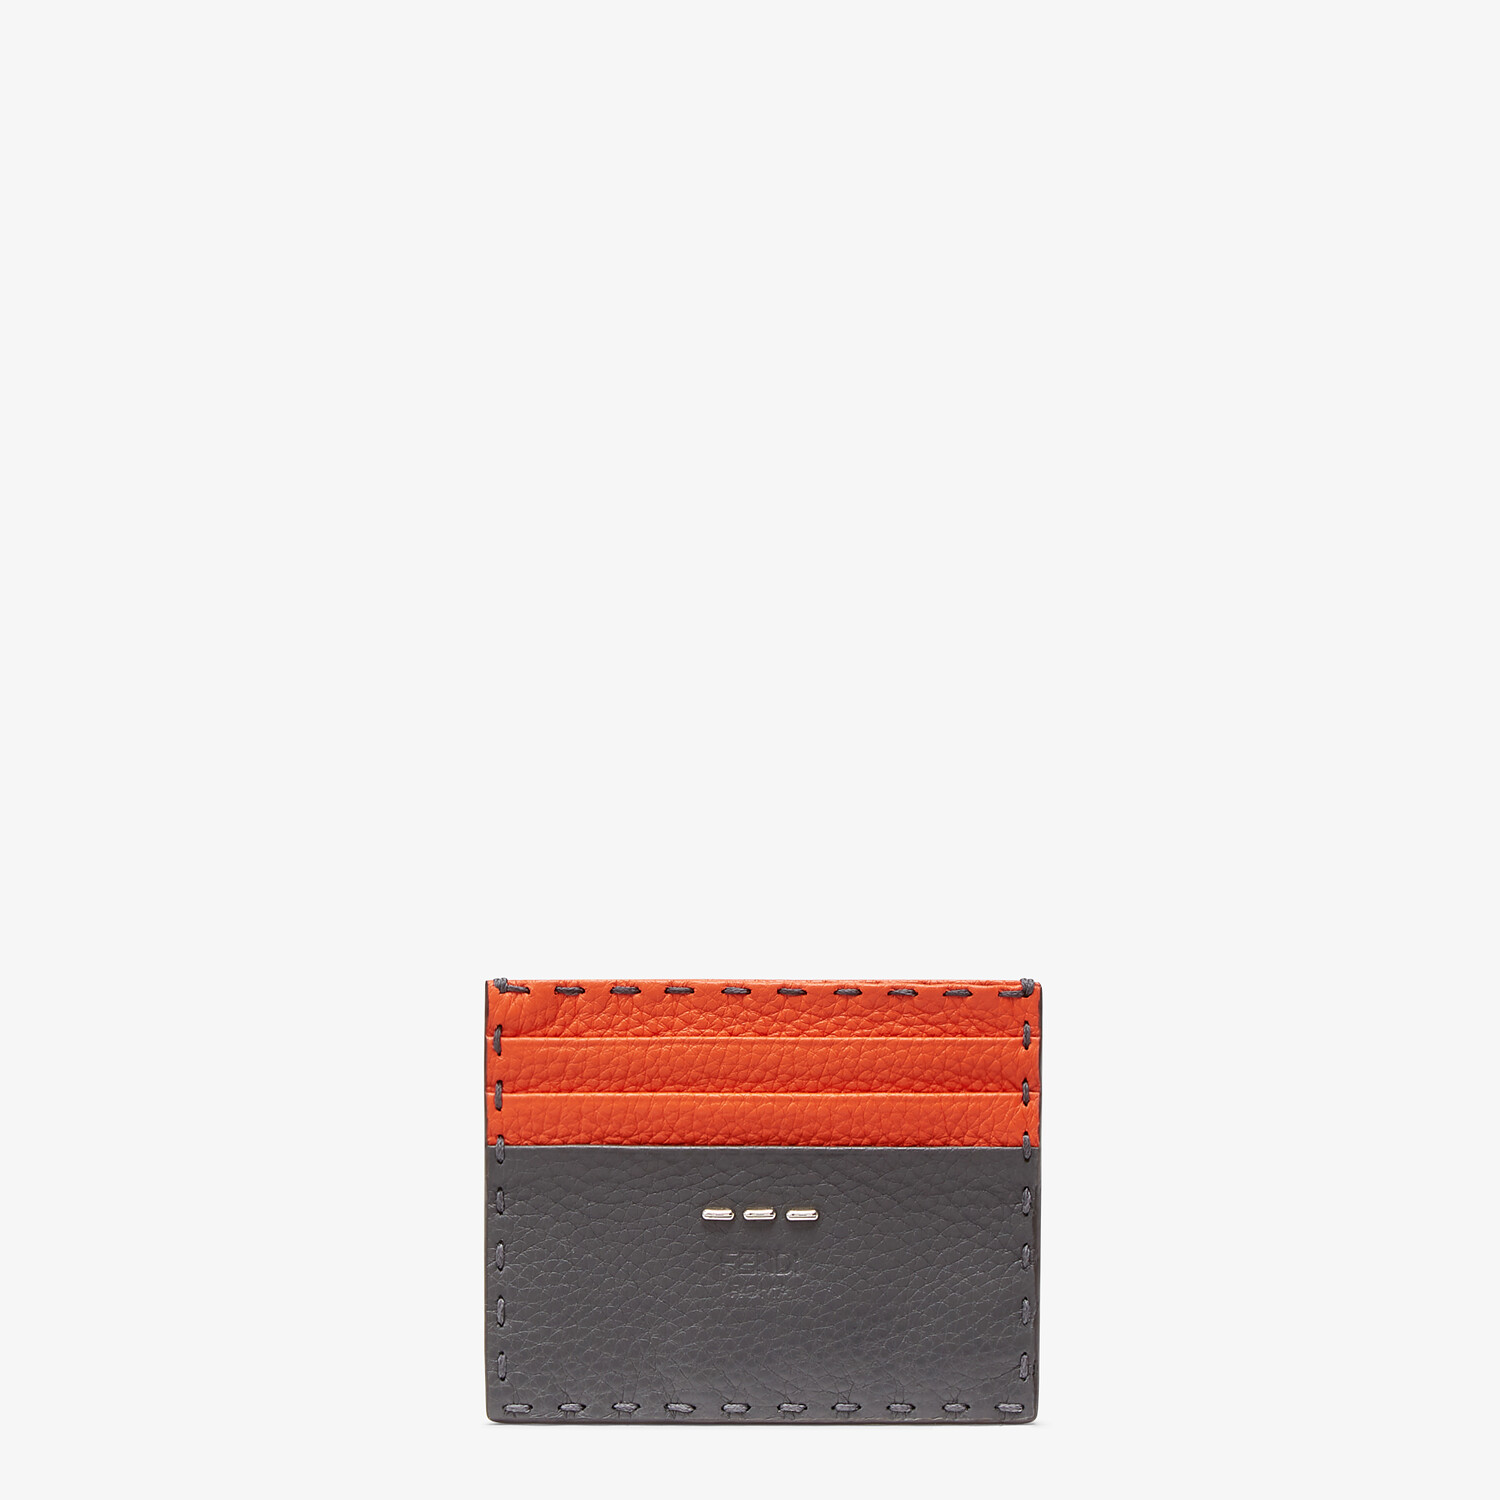 FENDI CARD HOLDER - Multicolor leather card holder - view 1 detail